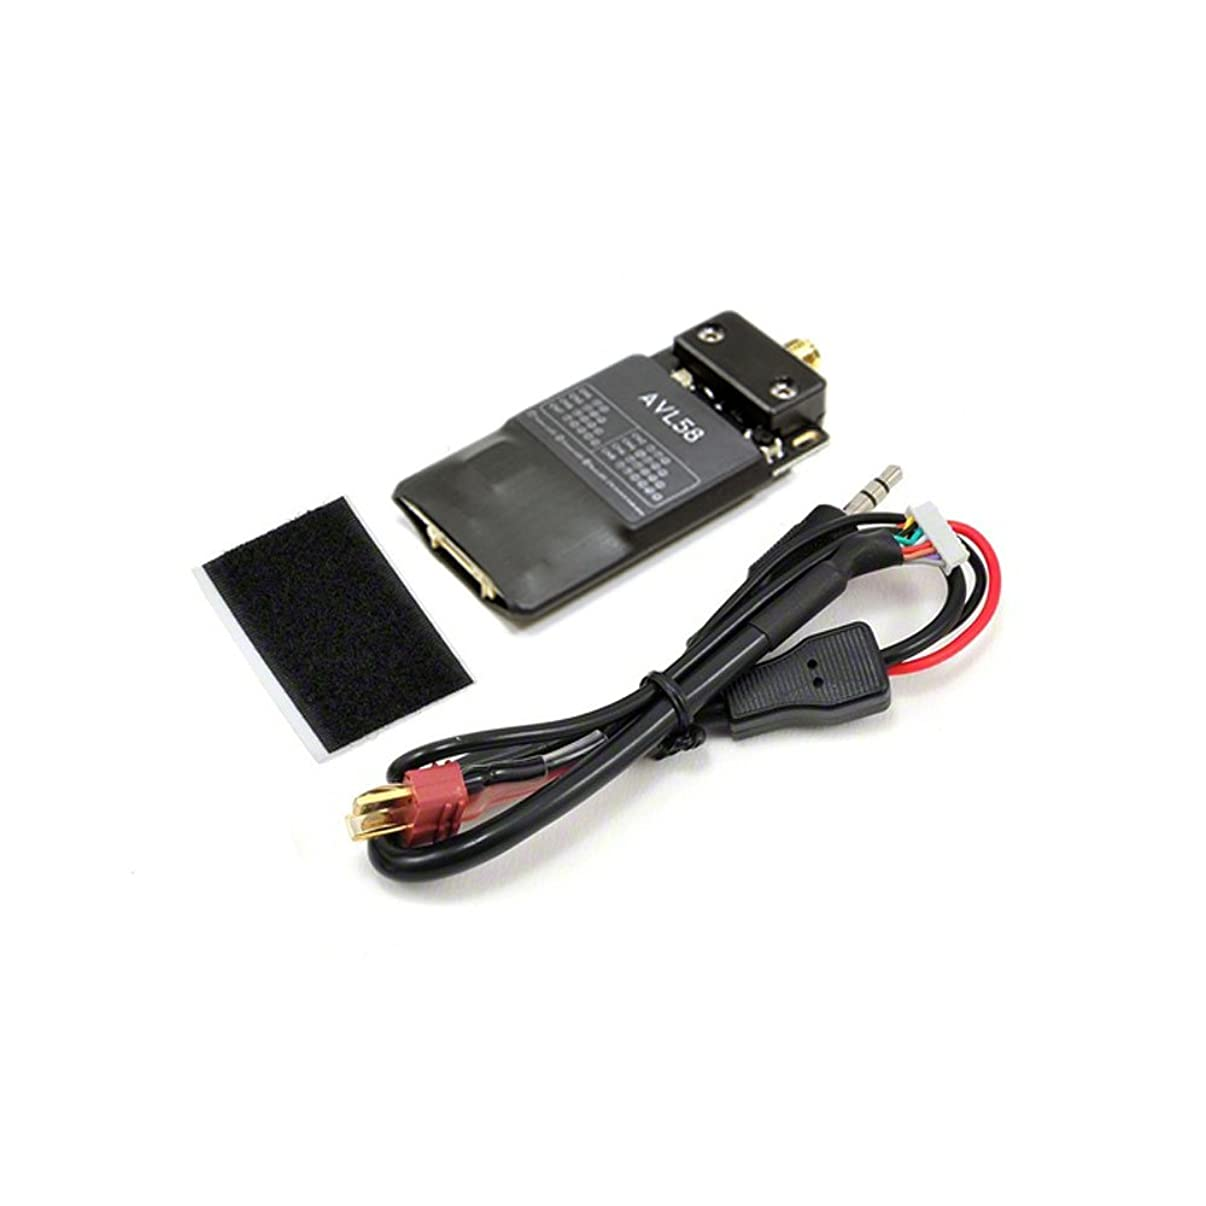 DJI Original FPV Mini AVL58 TX Lite Module 5.8GHz 8 Channel SMA Video Downlink Transmitter for DJI Phantom 1, FC40, Phantom 2, 2 Vision, 2 Vision+, DJI Flame Wheel F330, F450, F550